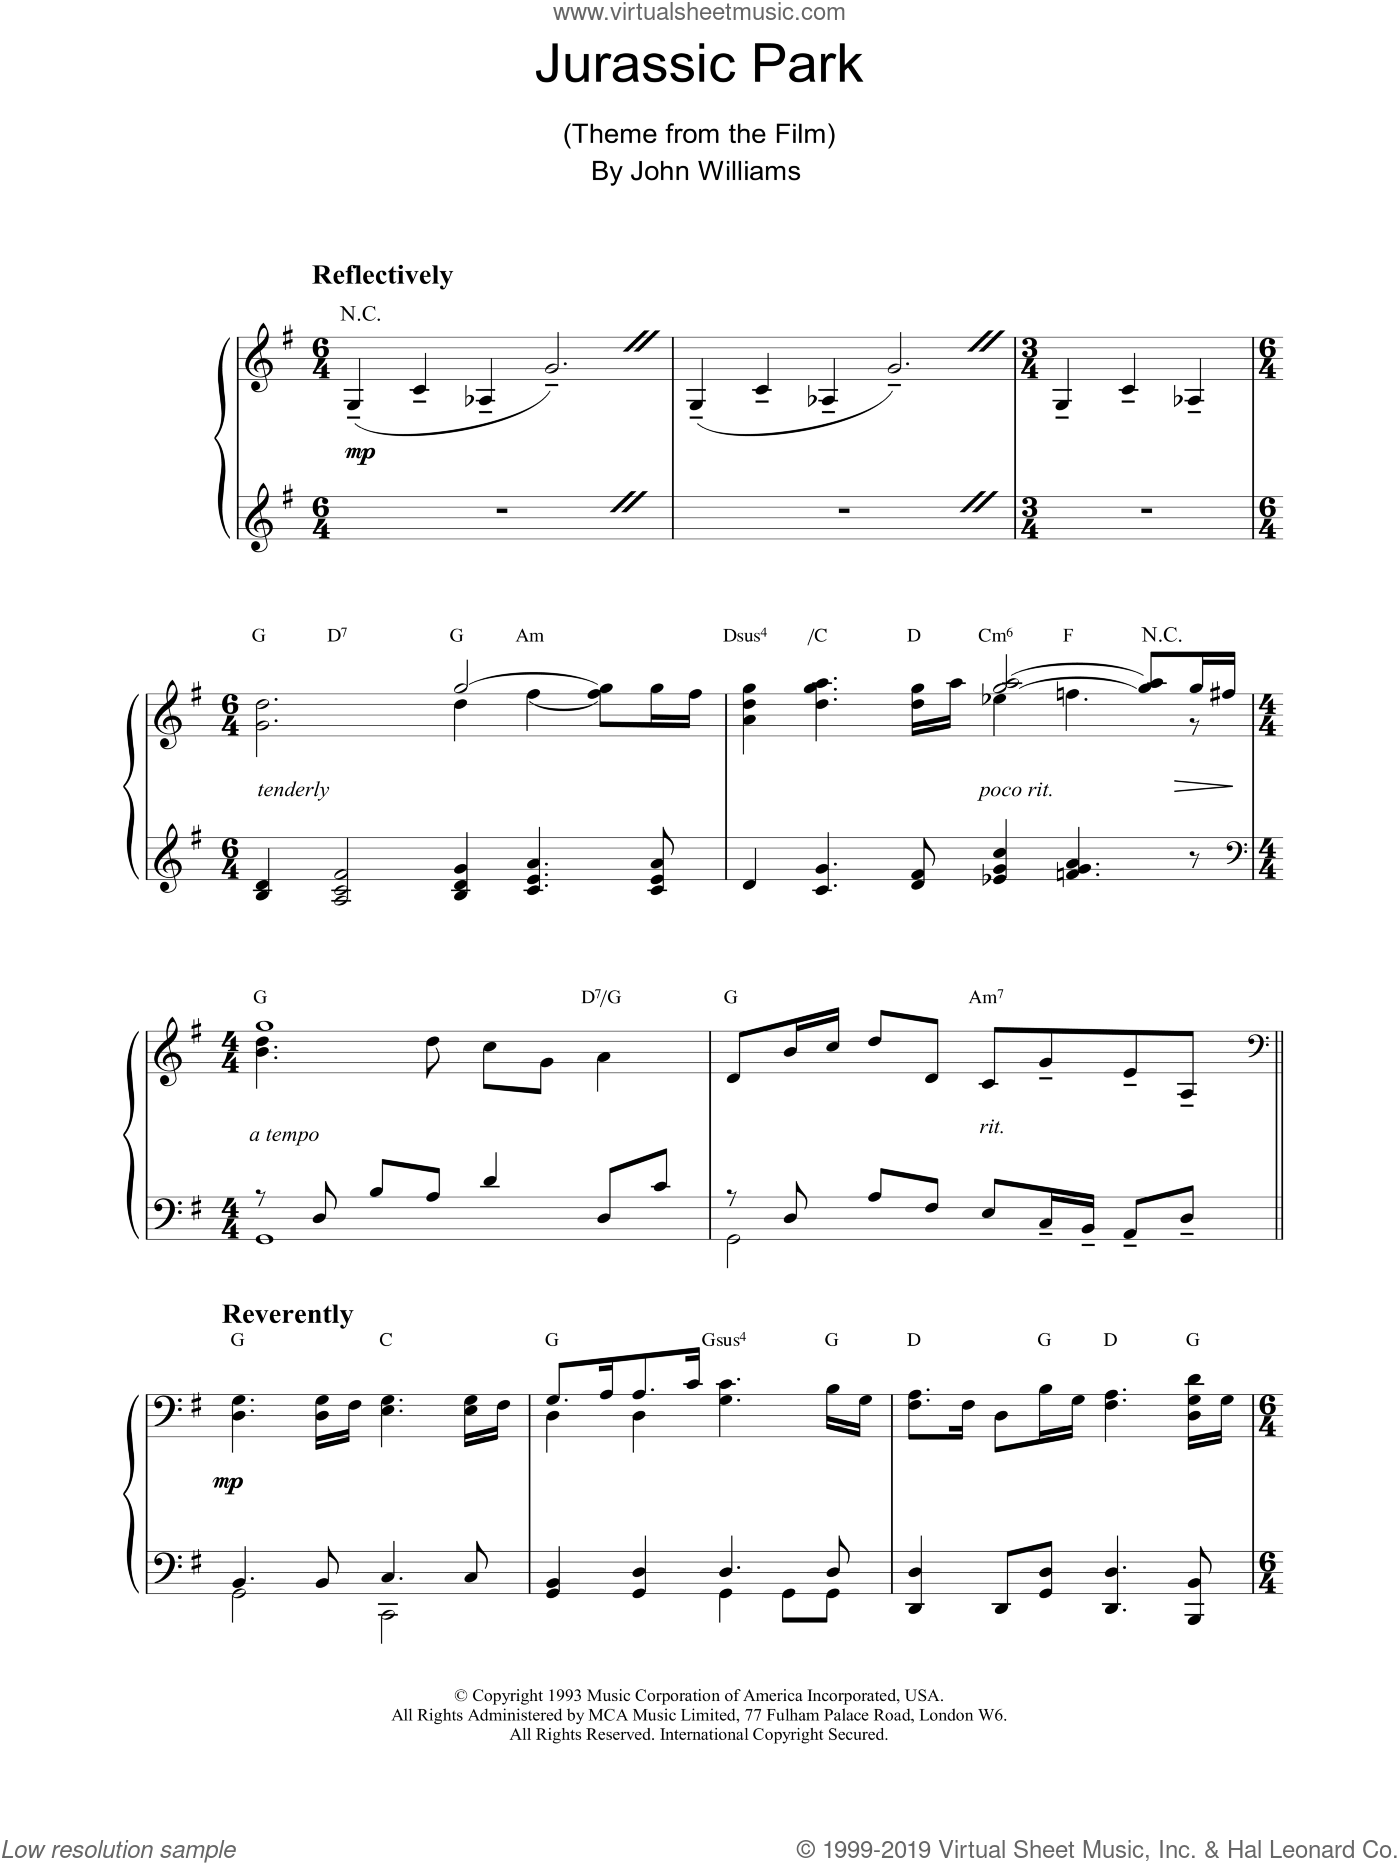 Jurassic Park sheet music for piano solo by John Williams